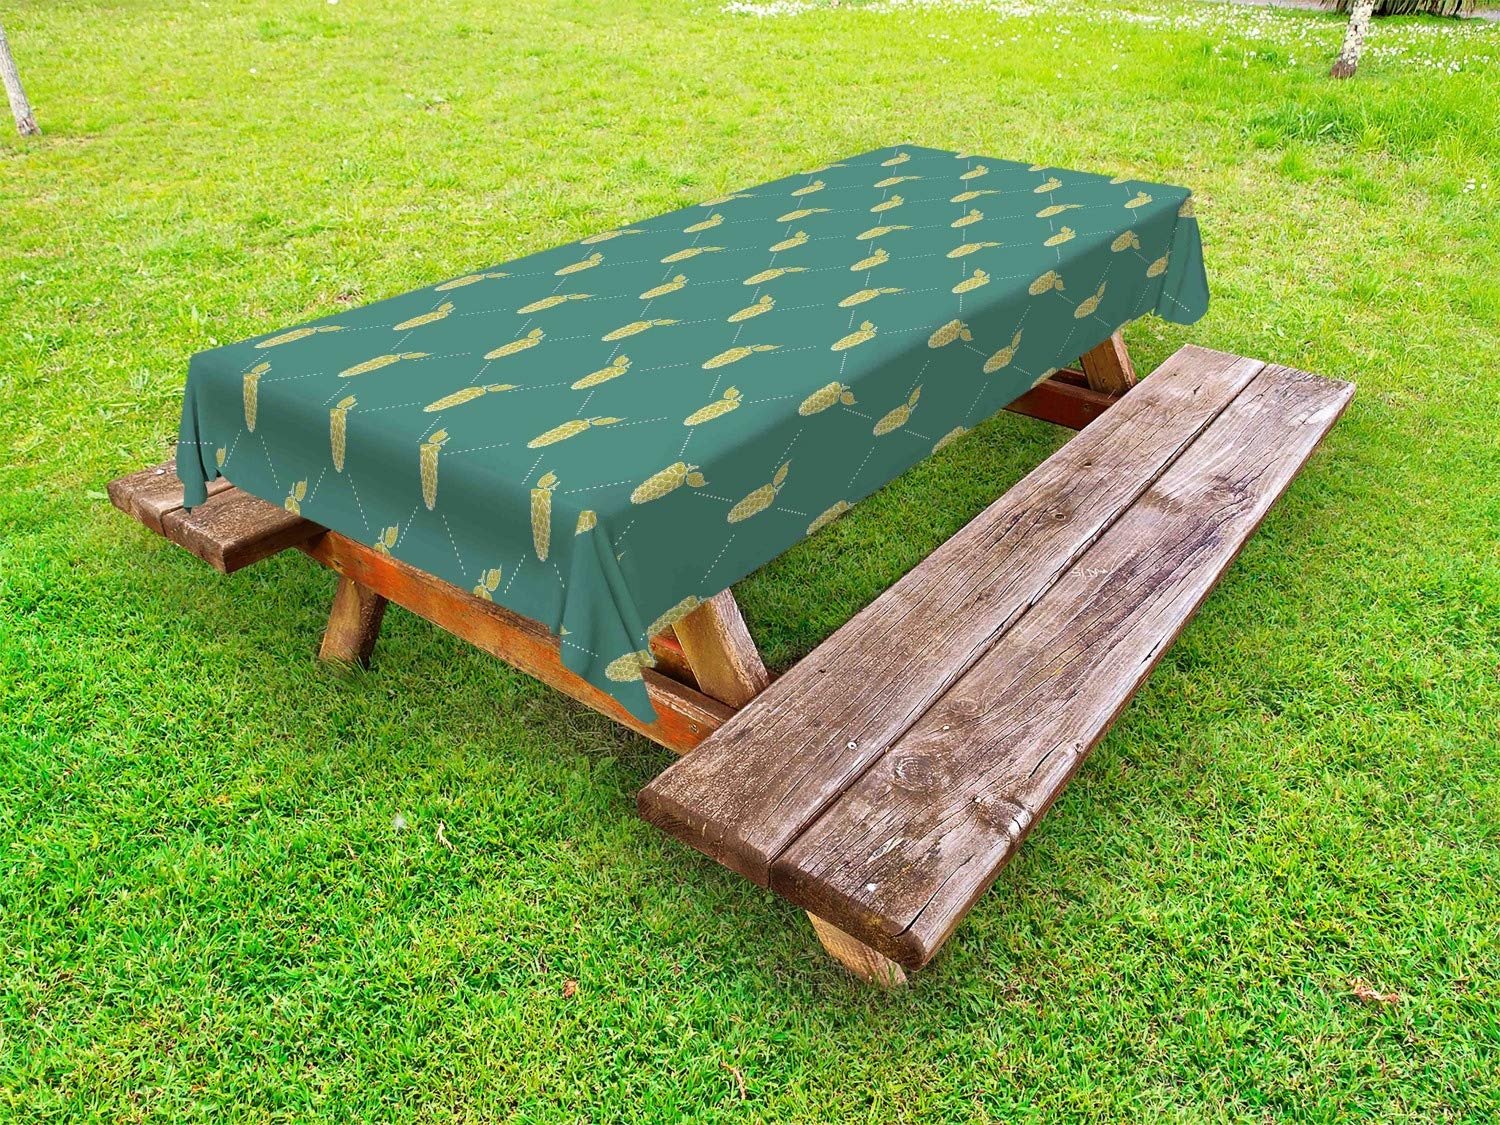 Ambesonne Alcohol Outdoor Tablecloth, Vintage Pattern with Stylized Hops in Diagonal Order Organic Brewery Theme, Decorative Washable Picnic Table Cloth, 58 X 120 Inches, Khaki and Teal